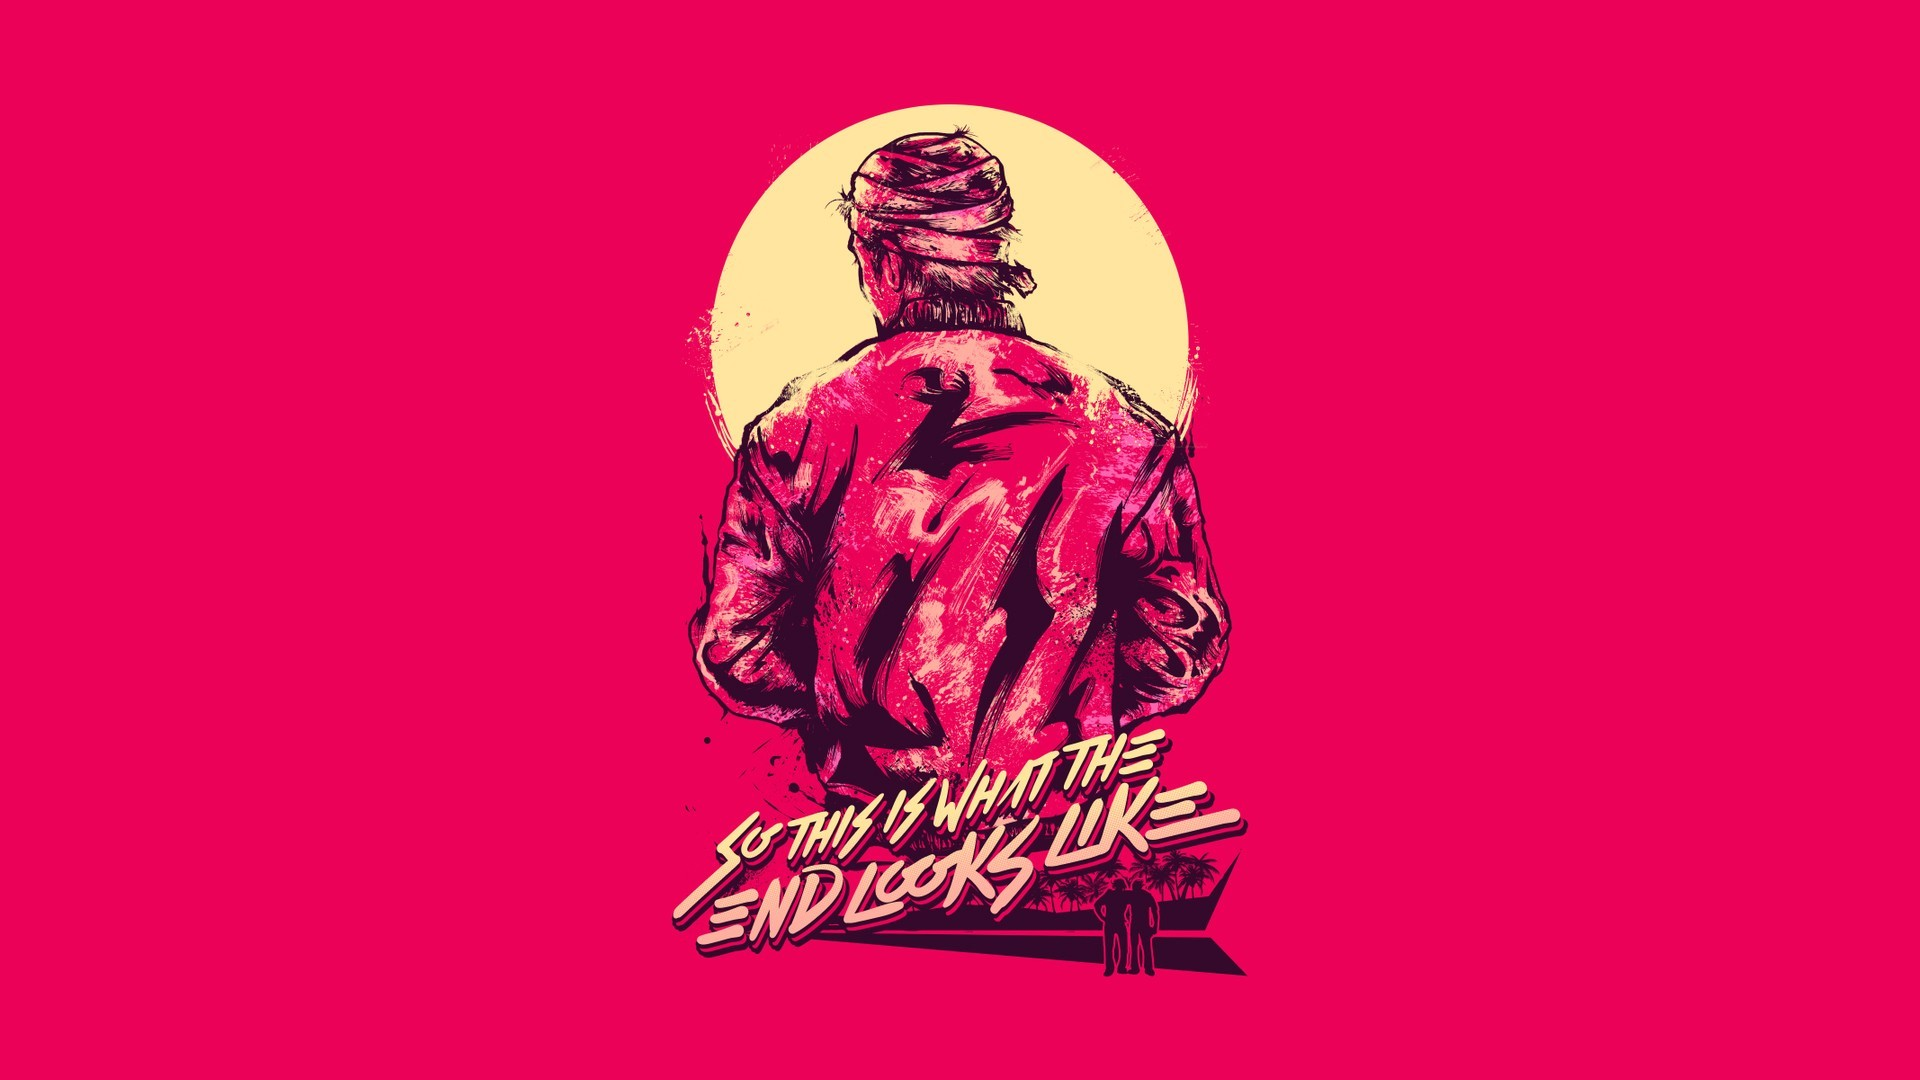 Hotline Miami 2 Wallpaper 1920x1080 (80+ images)